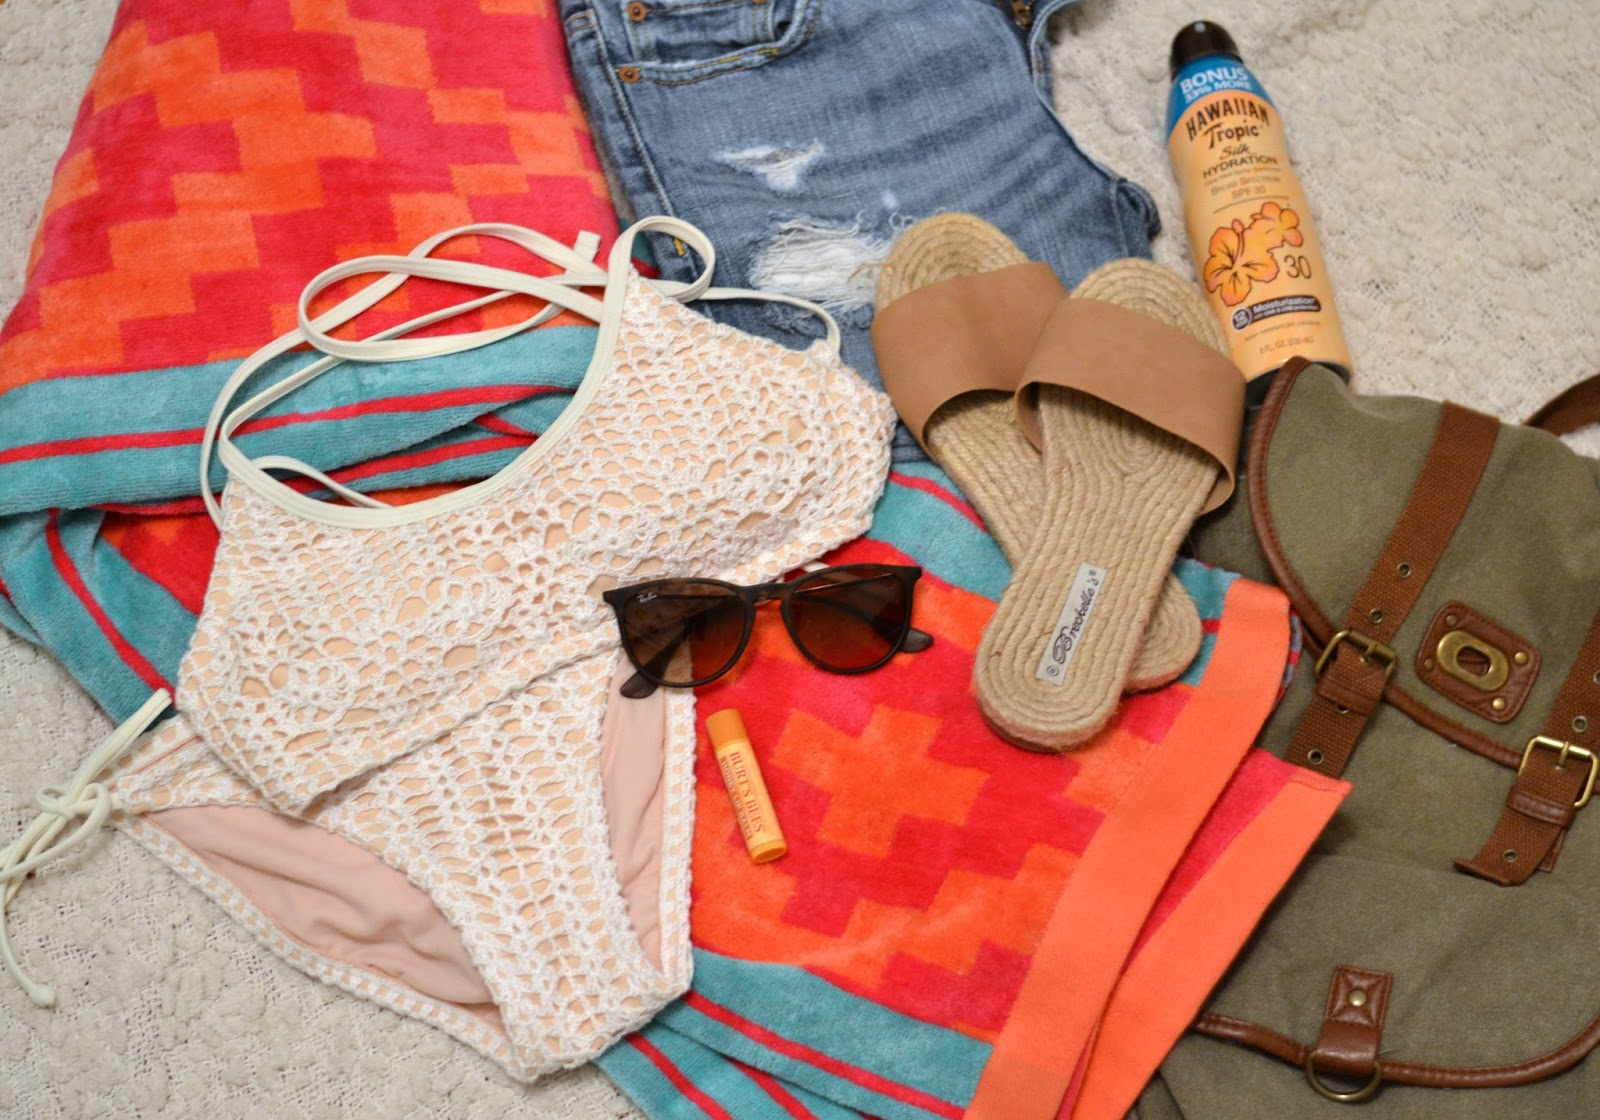 Lake and beach summer essentials